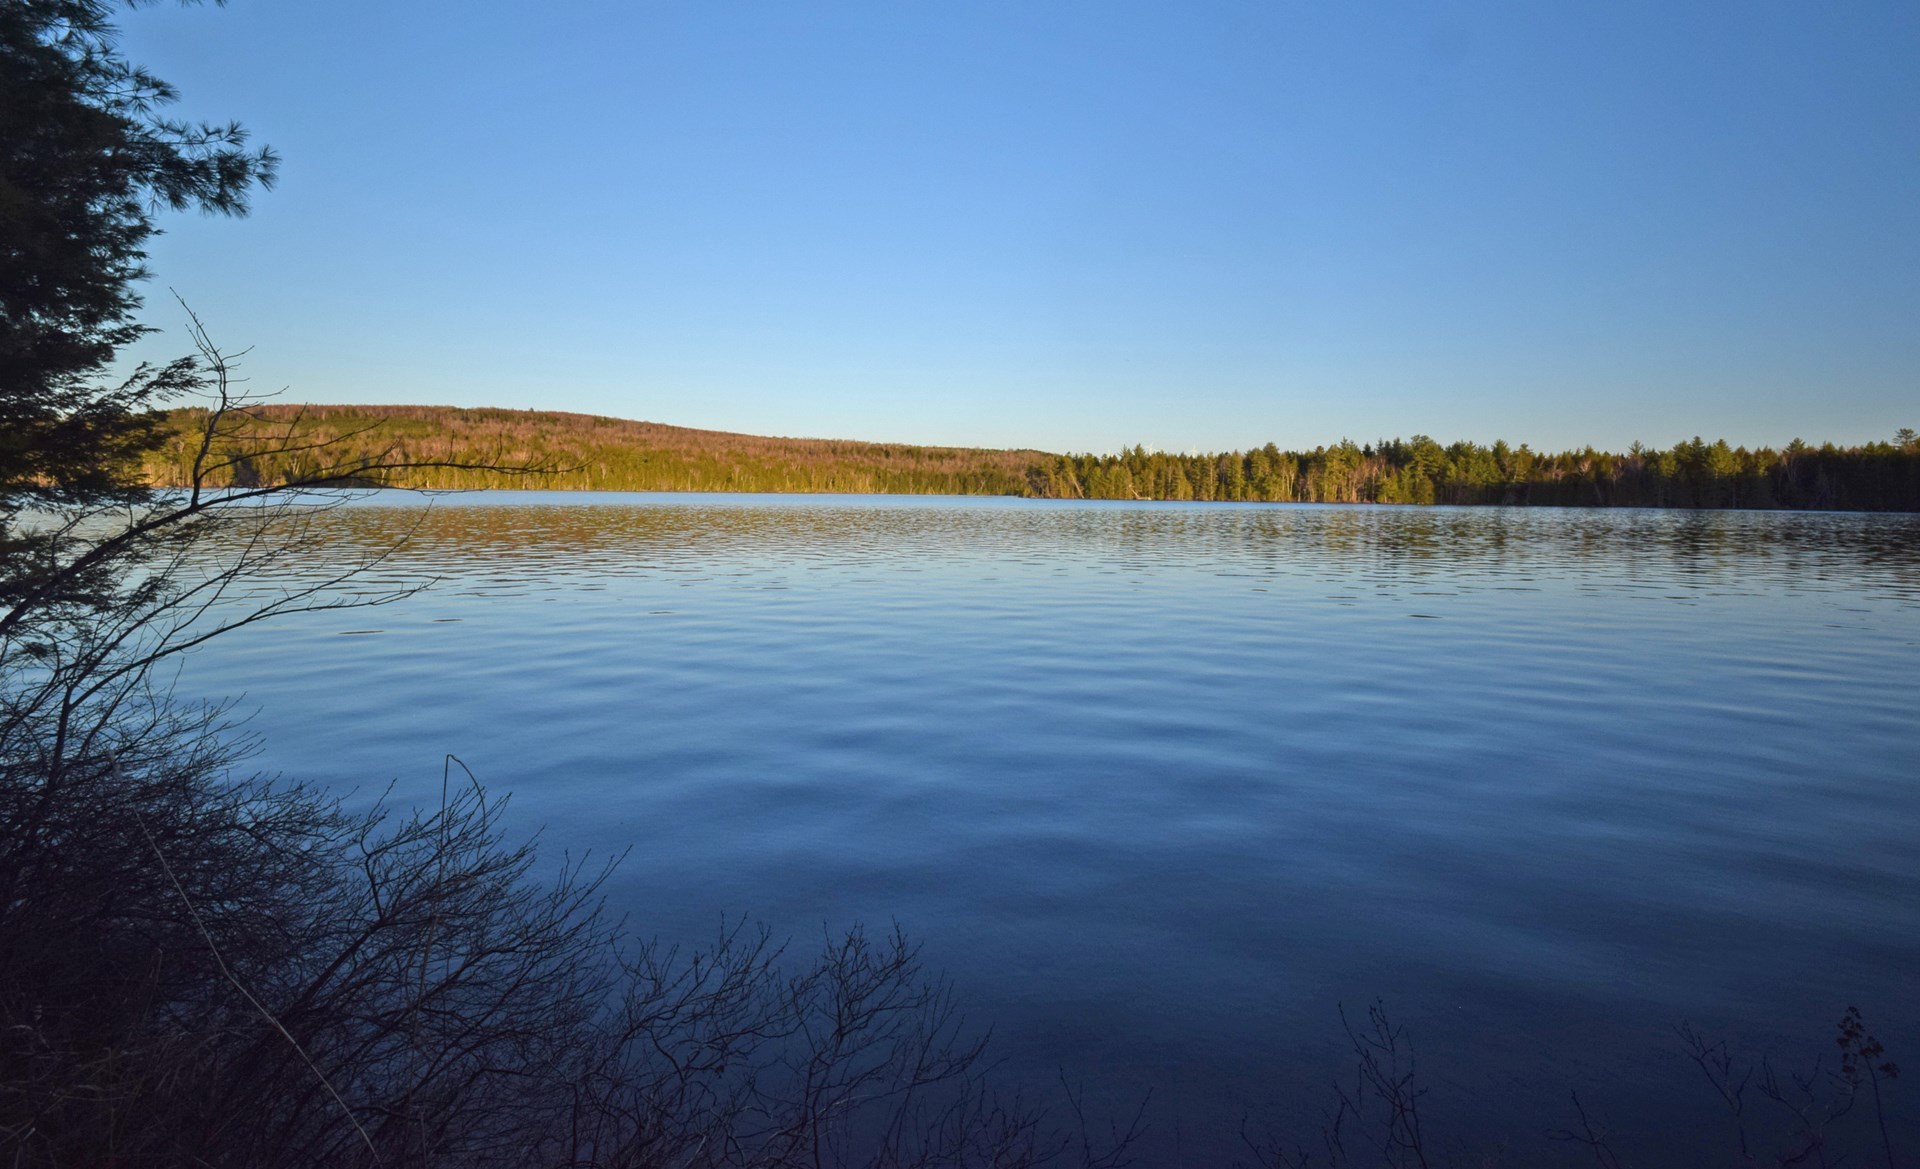 Waterfront Land For Sale in Lincoln, Maine